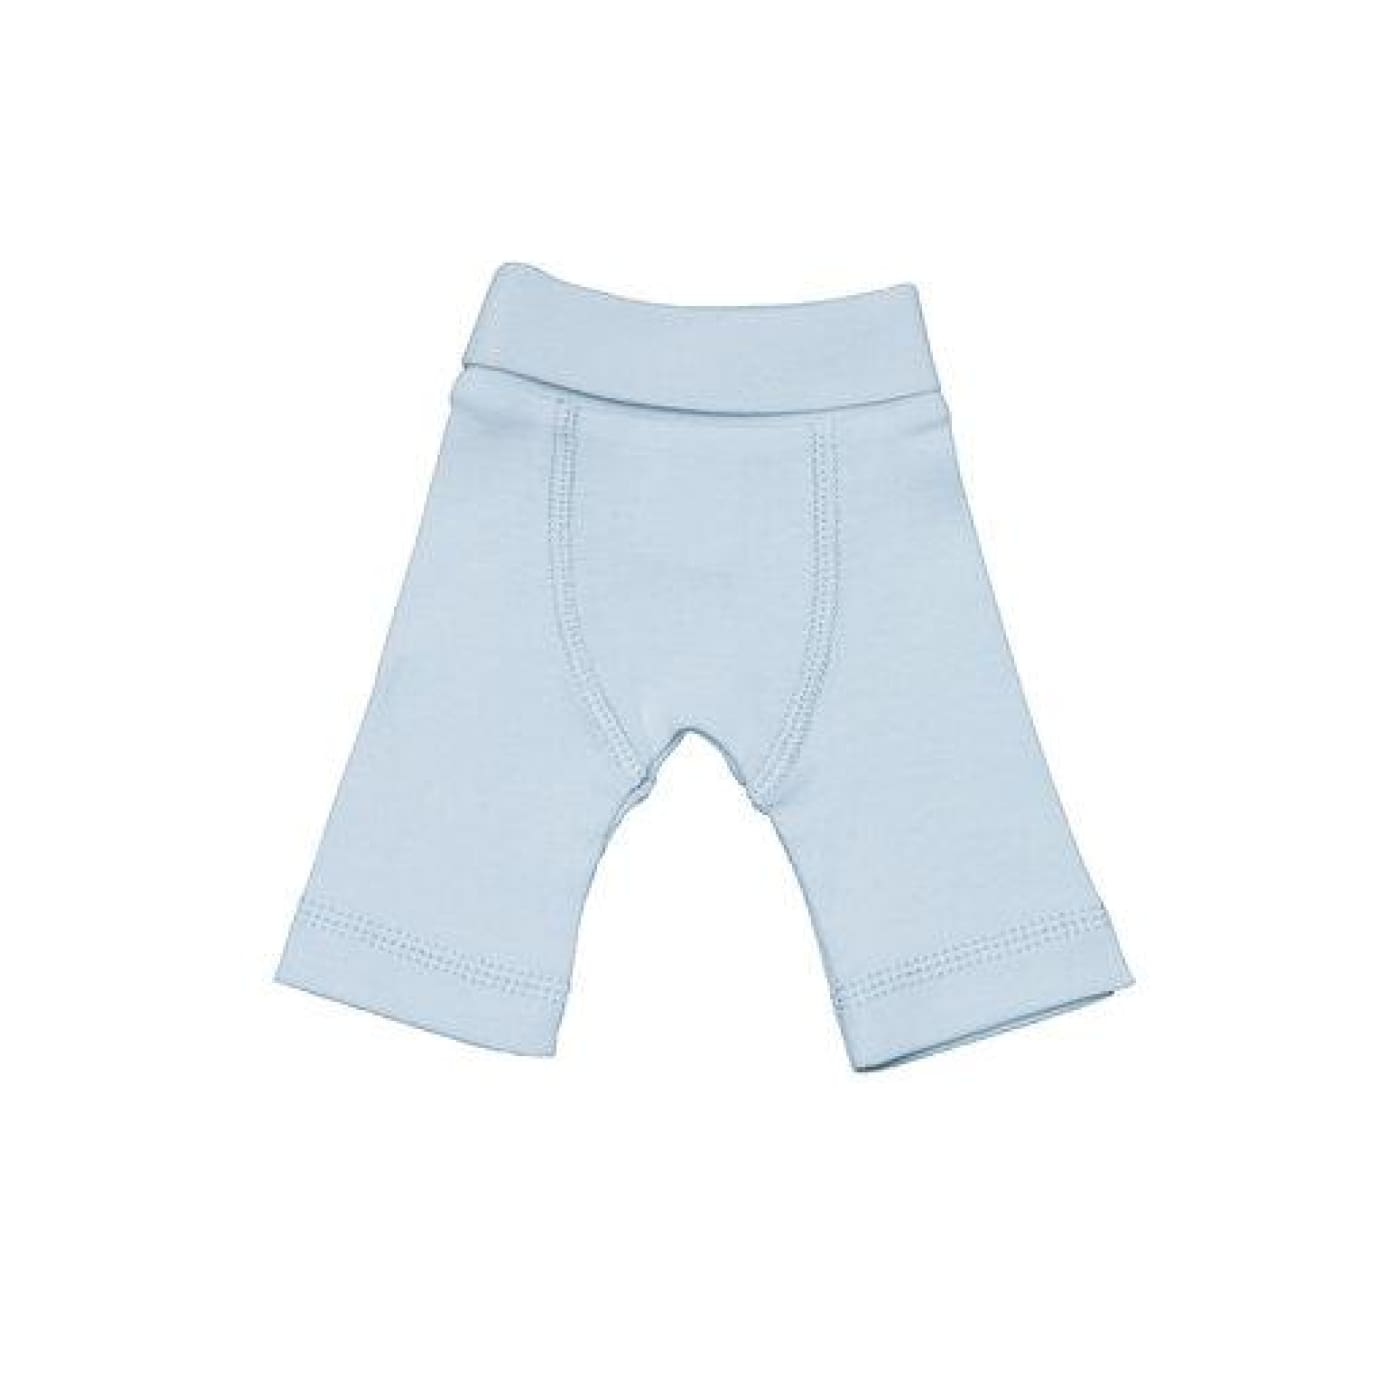 Earlybirds Pants - Blue M - BABY & TODDLER CLOTHING - BODYSUITS/SETS/MIX-MATCH